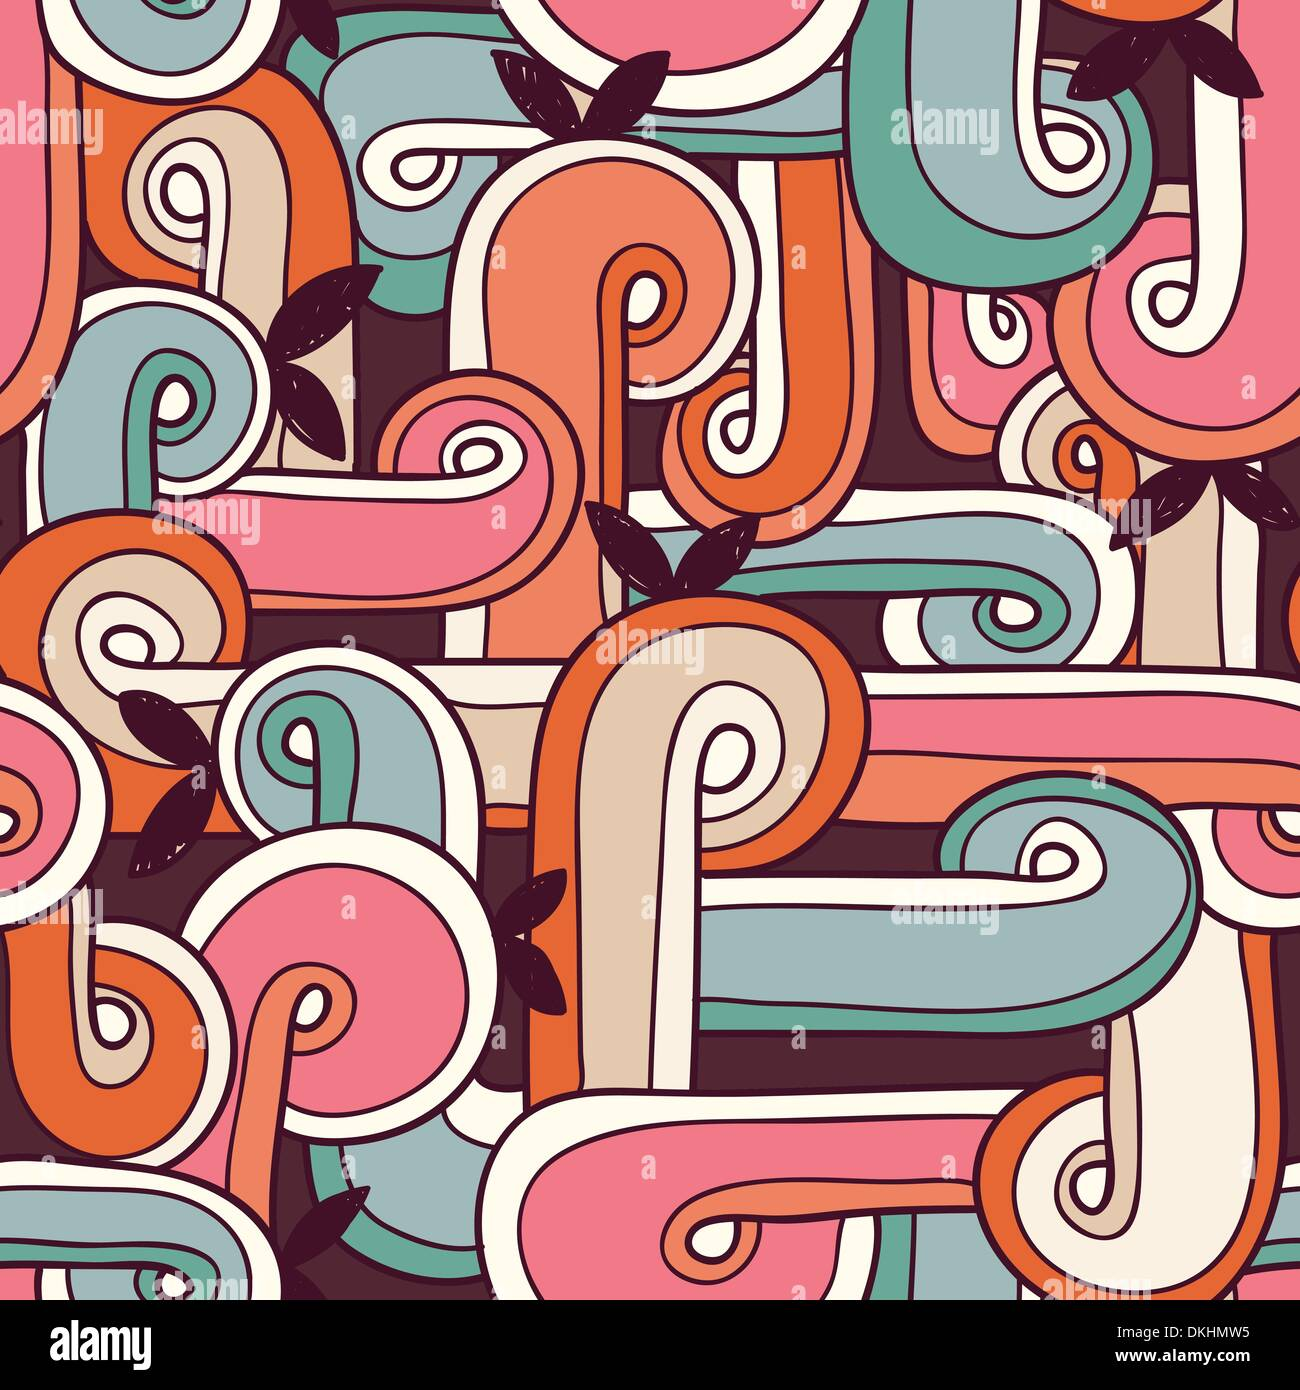 abstract vector seamless pattern - Stock Image